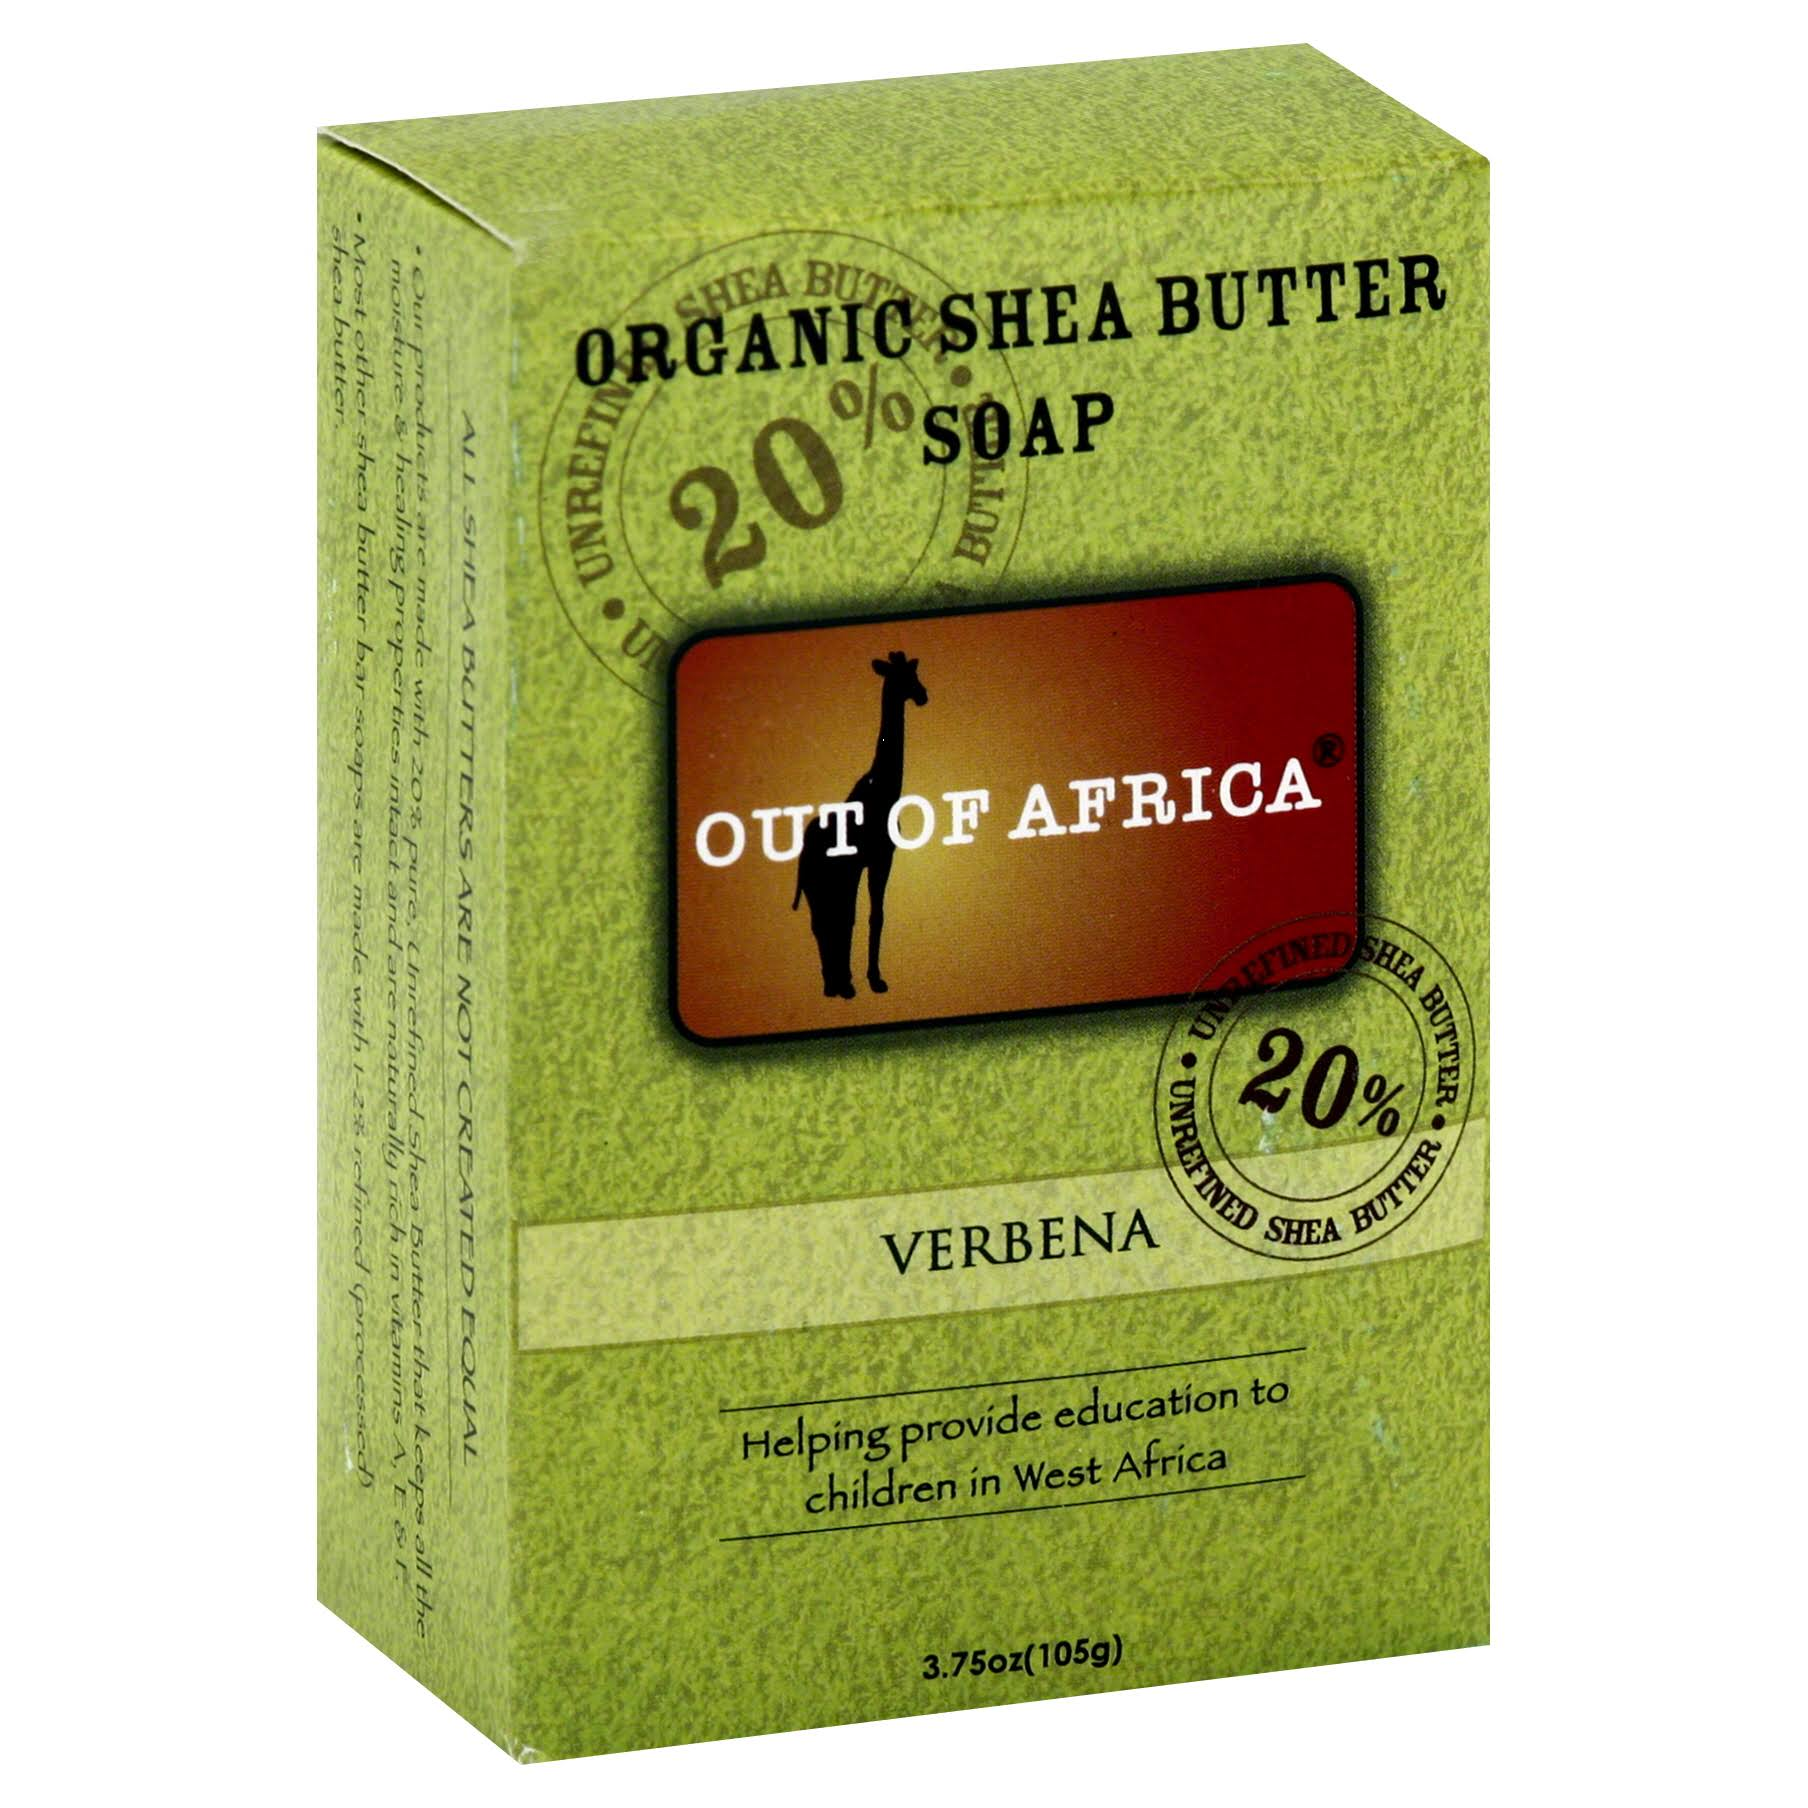 Out Of Africa Pure Shea Butter Bar Soap - Verbena